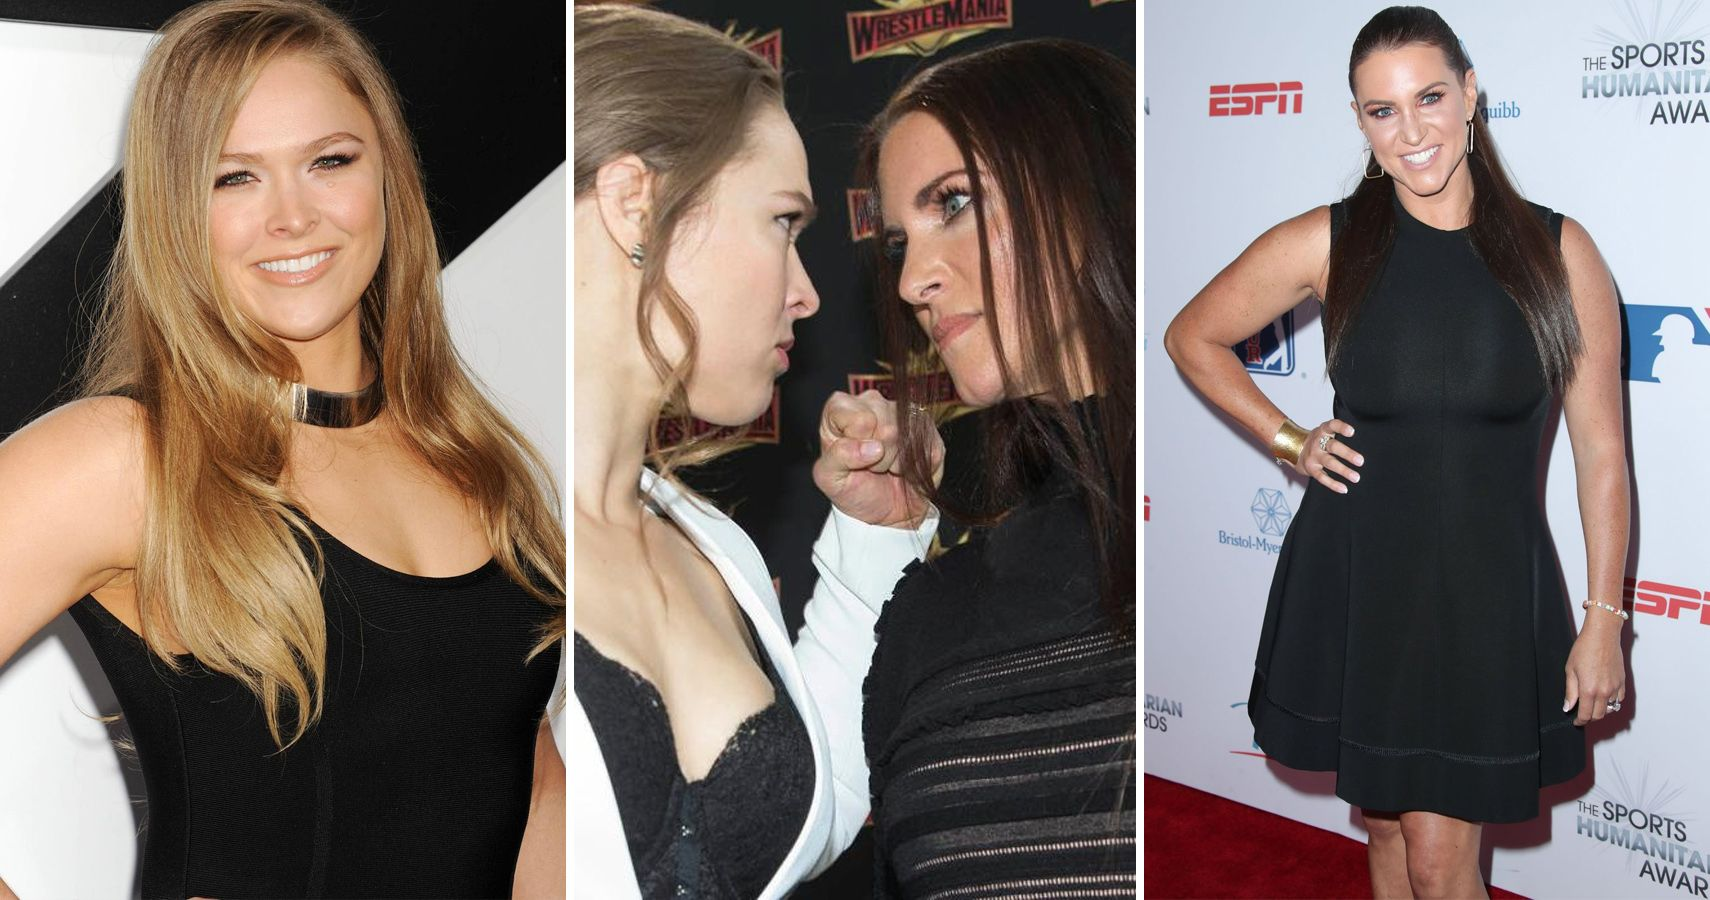 Ronda Rousey Vs Stephanie Mcmahon Whos More Attractive